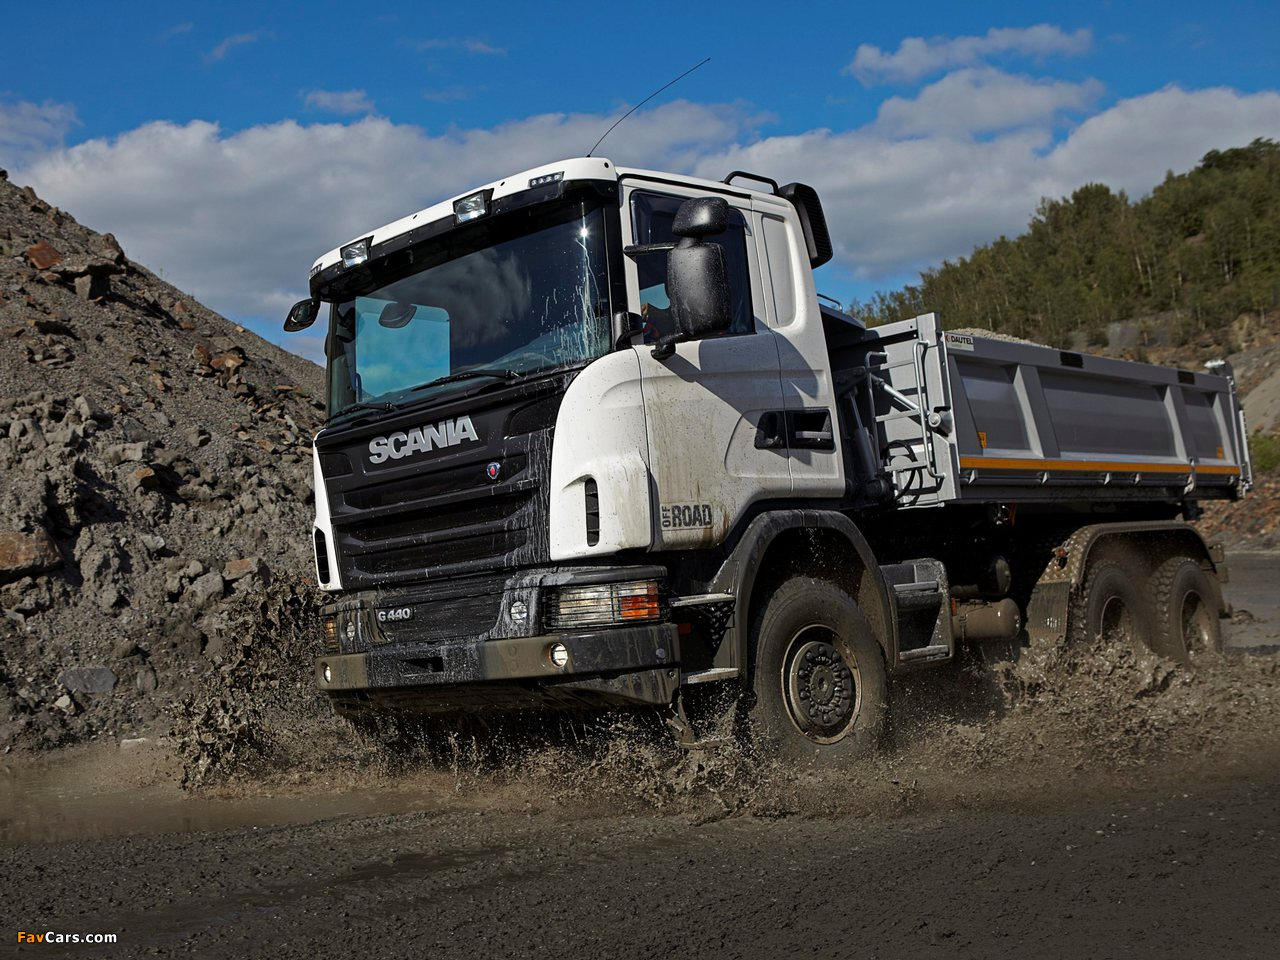 Scania G440 6x6 Tipper Off-Road Package 2011 photos (1280 x 960)